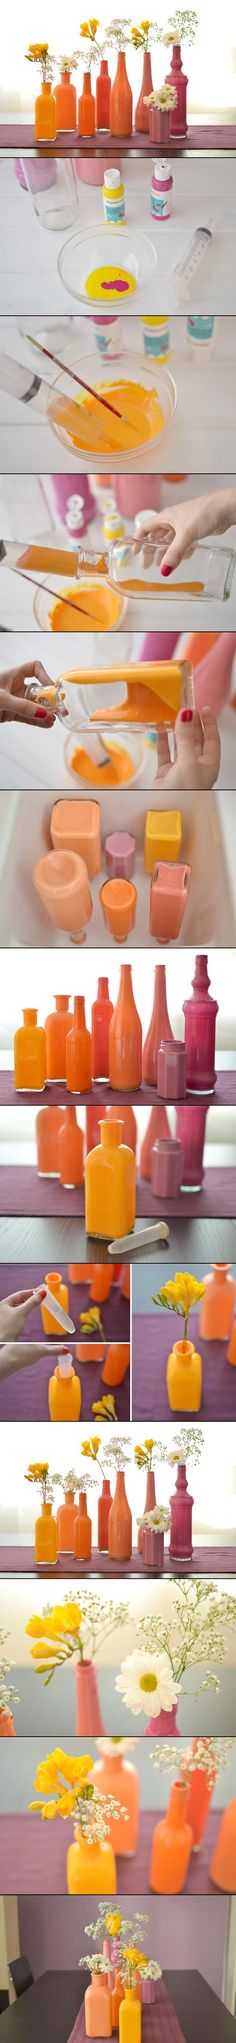 Bottles cute crafts, crafts to do, creative crafts, arts and crafts, Cute Crafts, Crafts To Do, Arts And Crafts, Diy Crafts, Creative Crafts, Bottle Painting, Diy Painting, Bottle Art, Diy Projects To Try